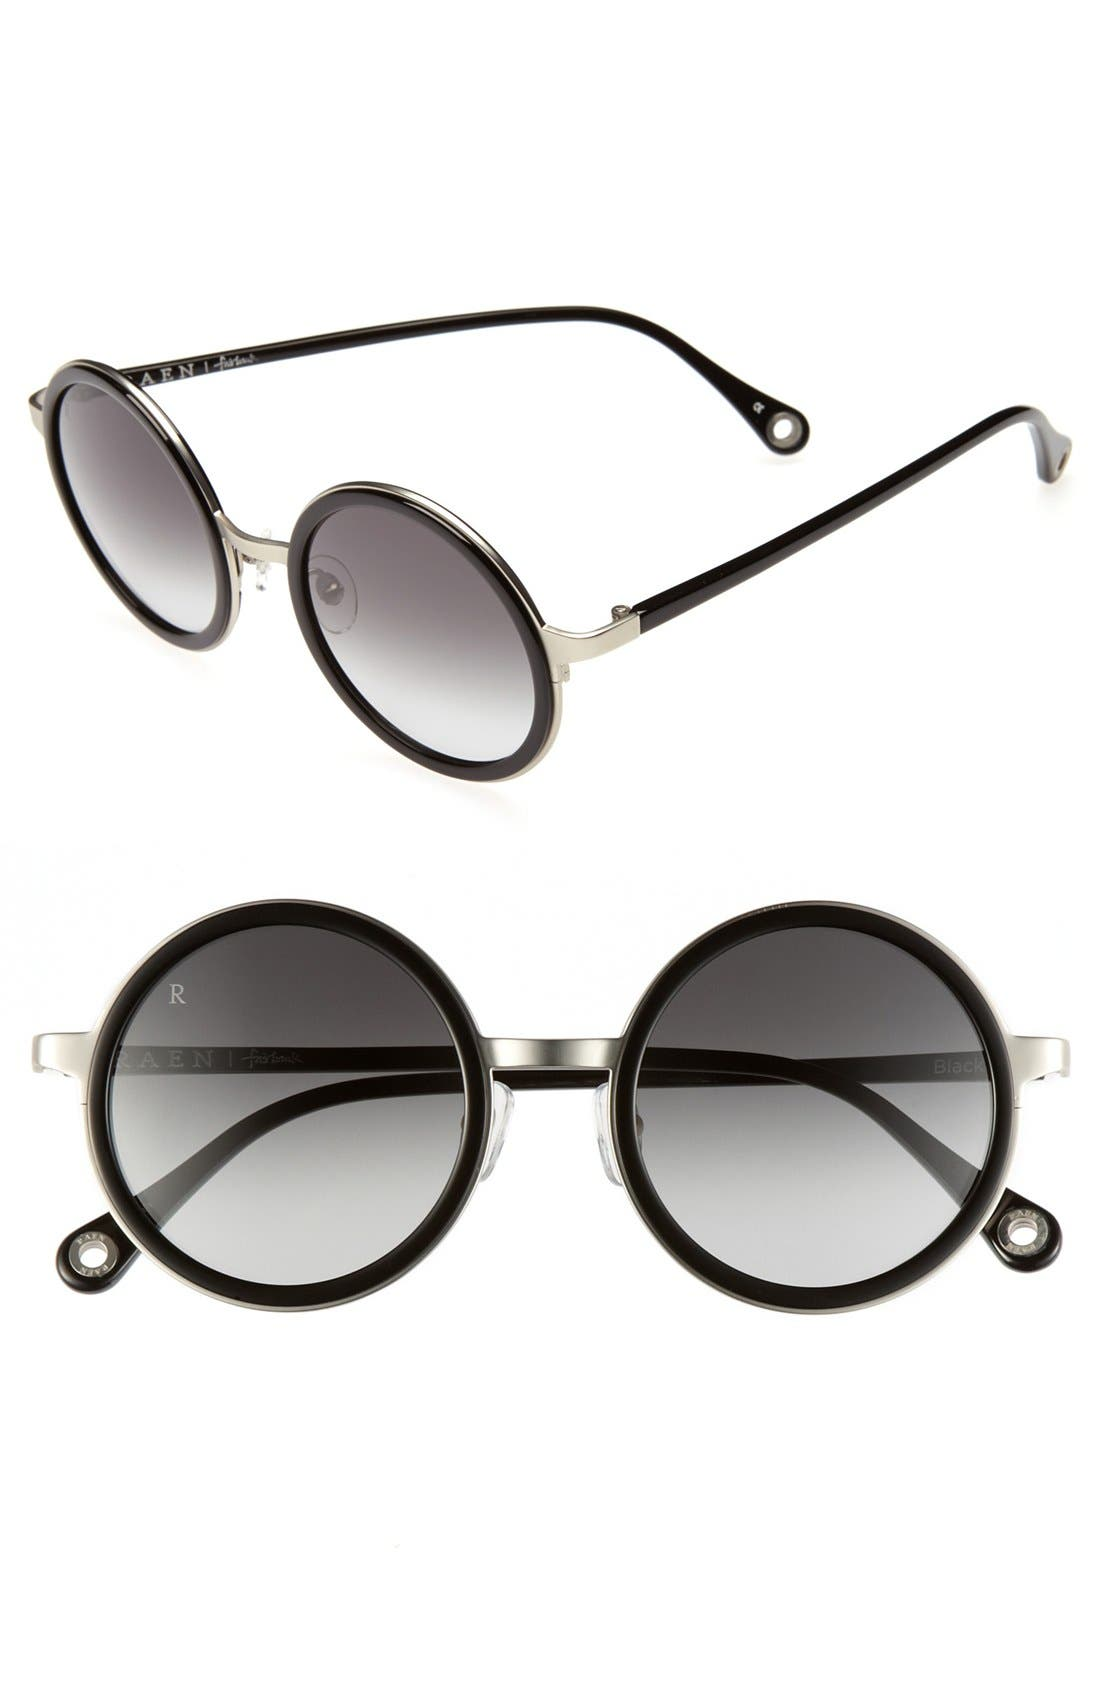 Main Image - RAEN 'Fairbank' 54mm Sunglasses